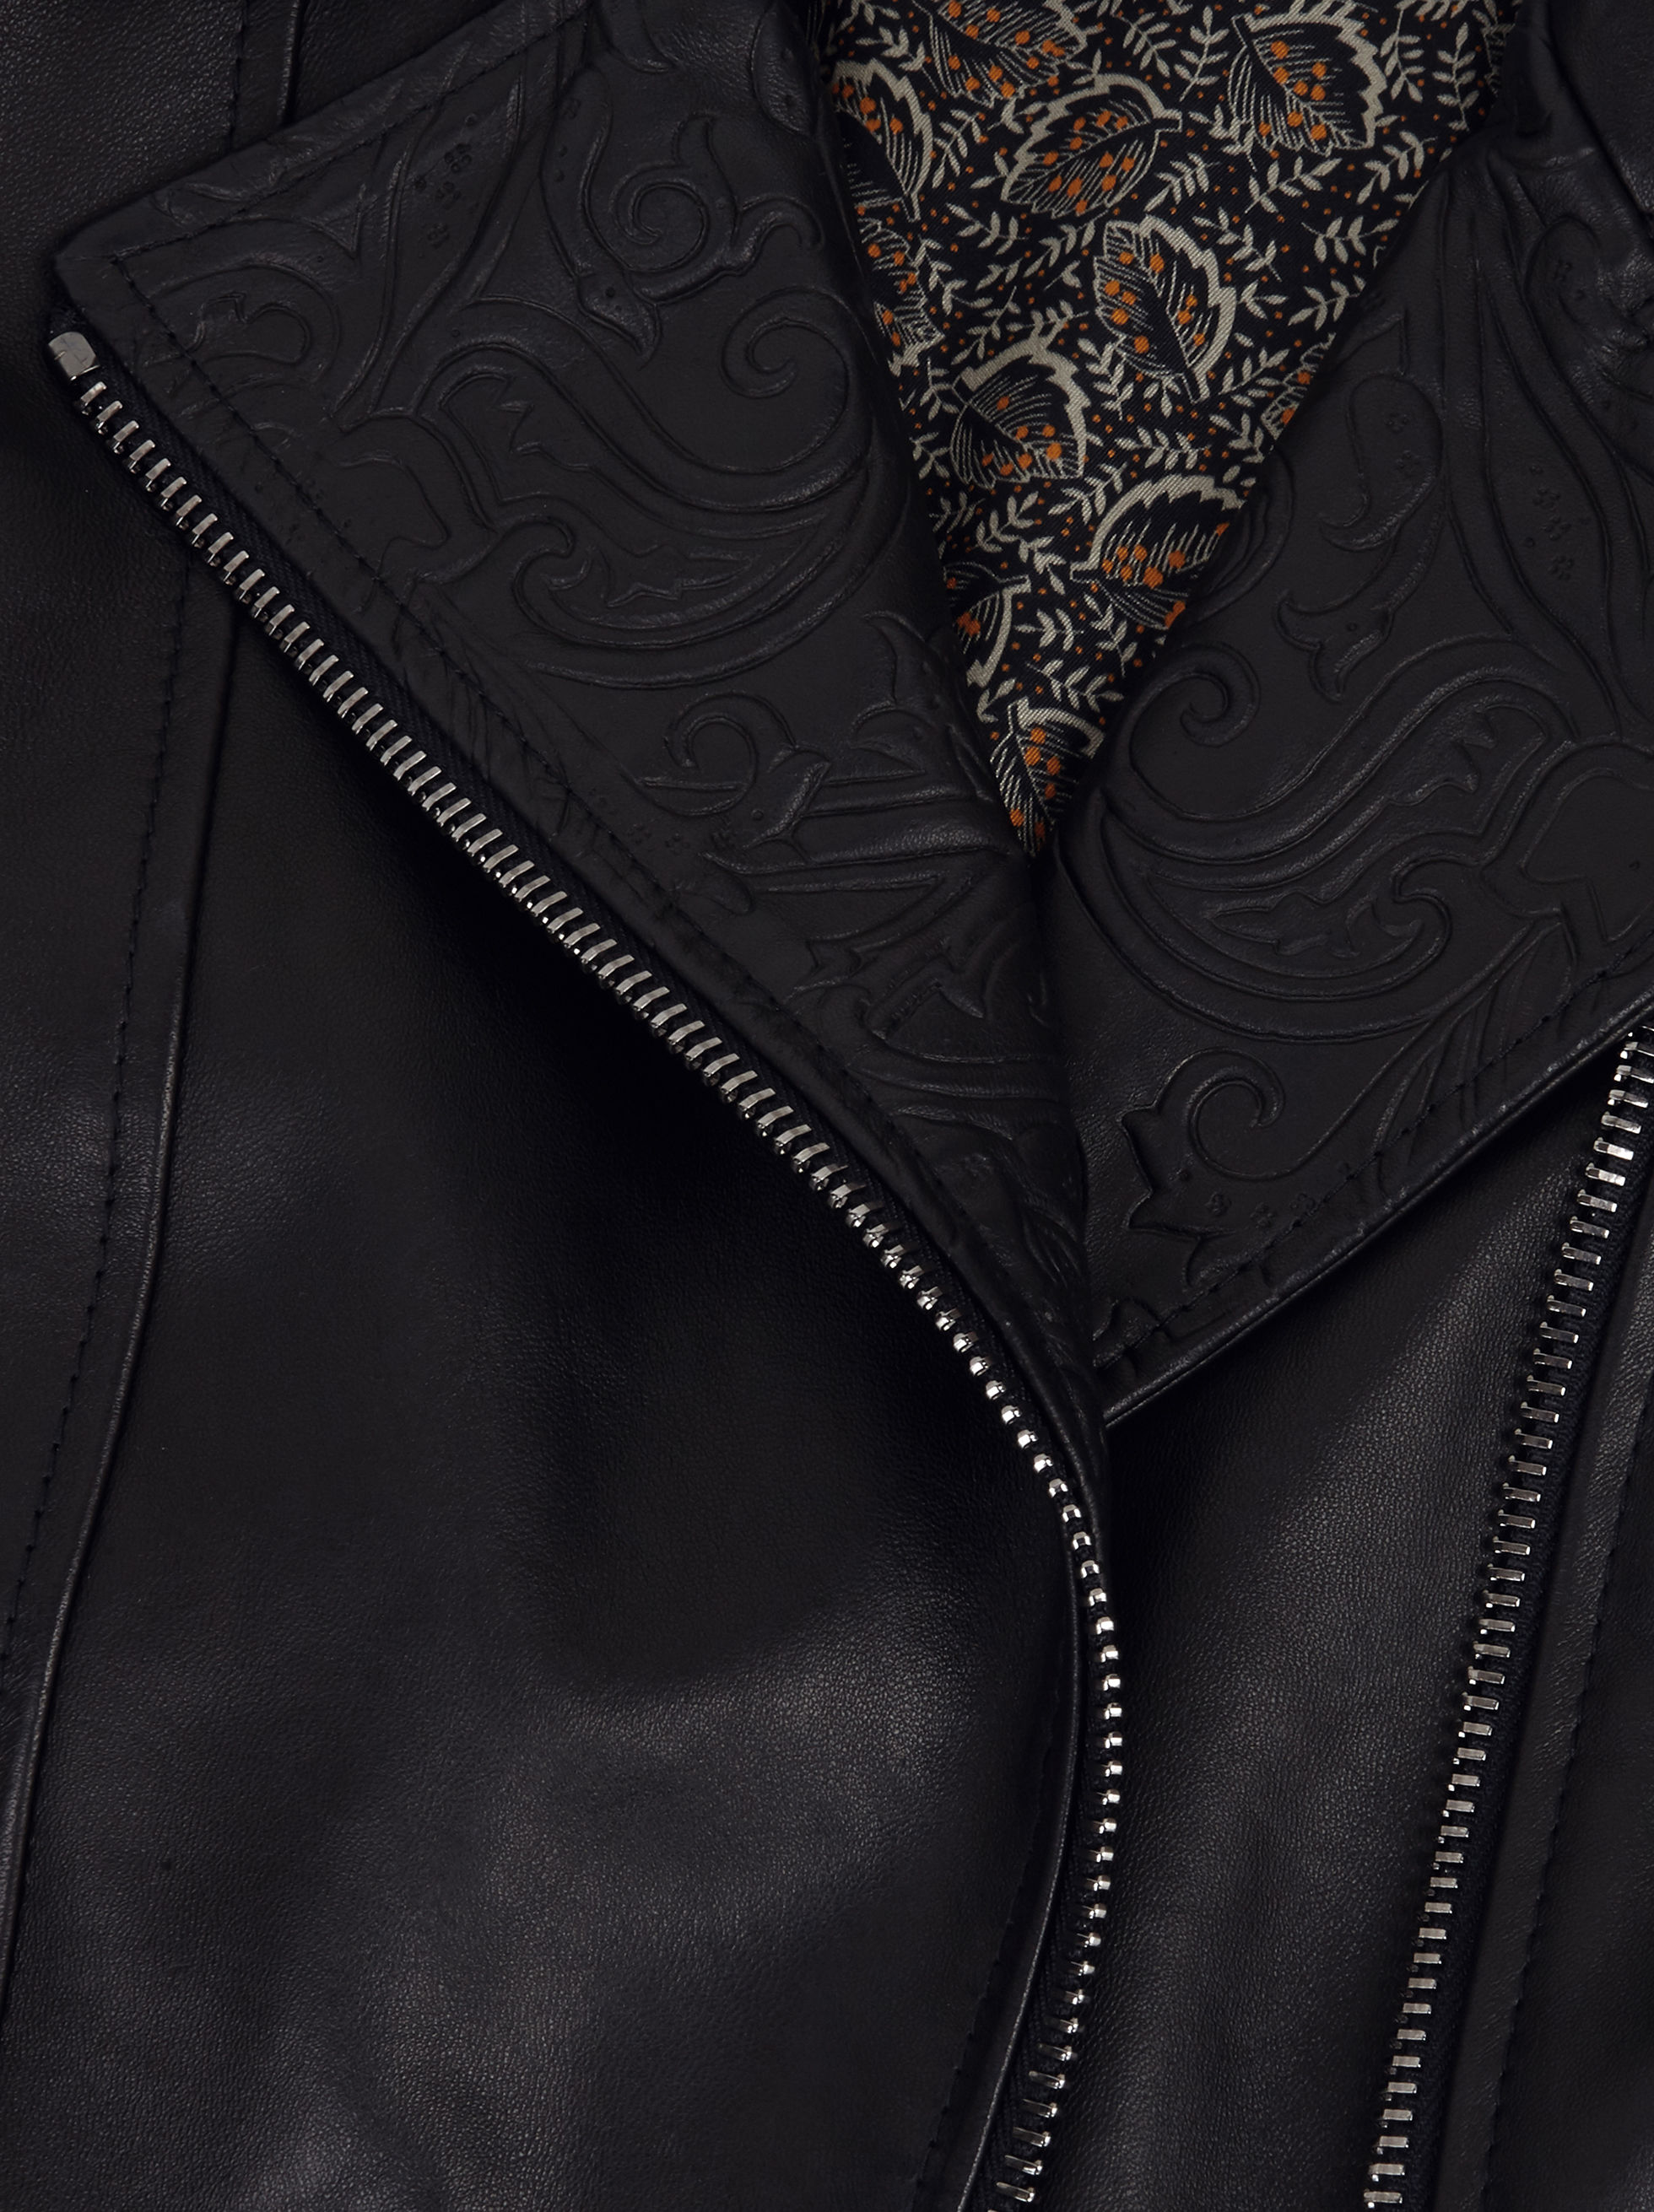 BIKER JACKET WITH PAISLEY PATTERNS